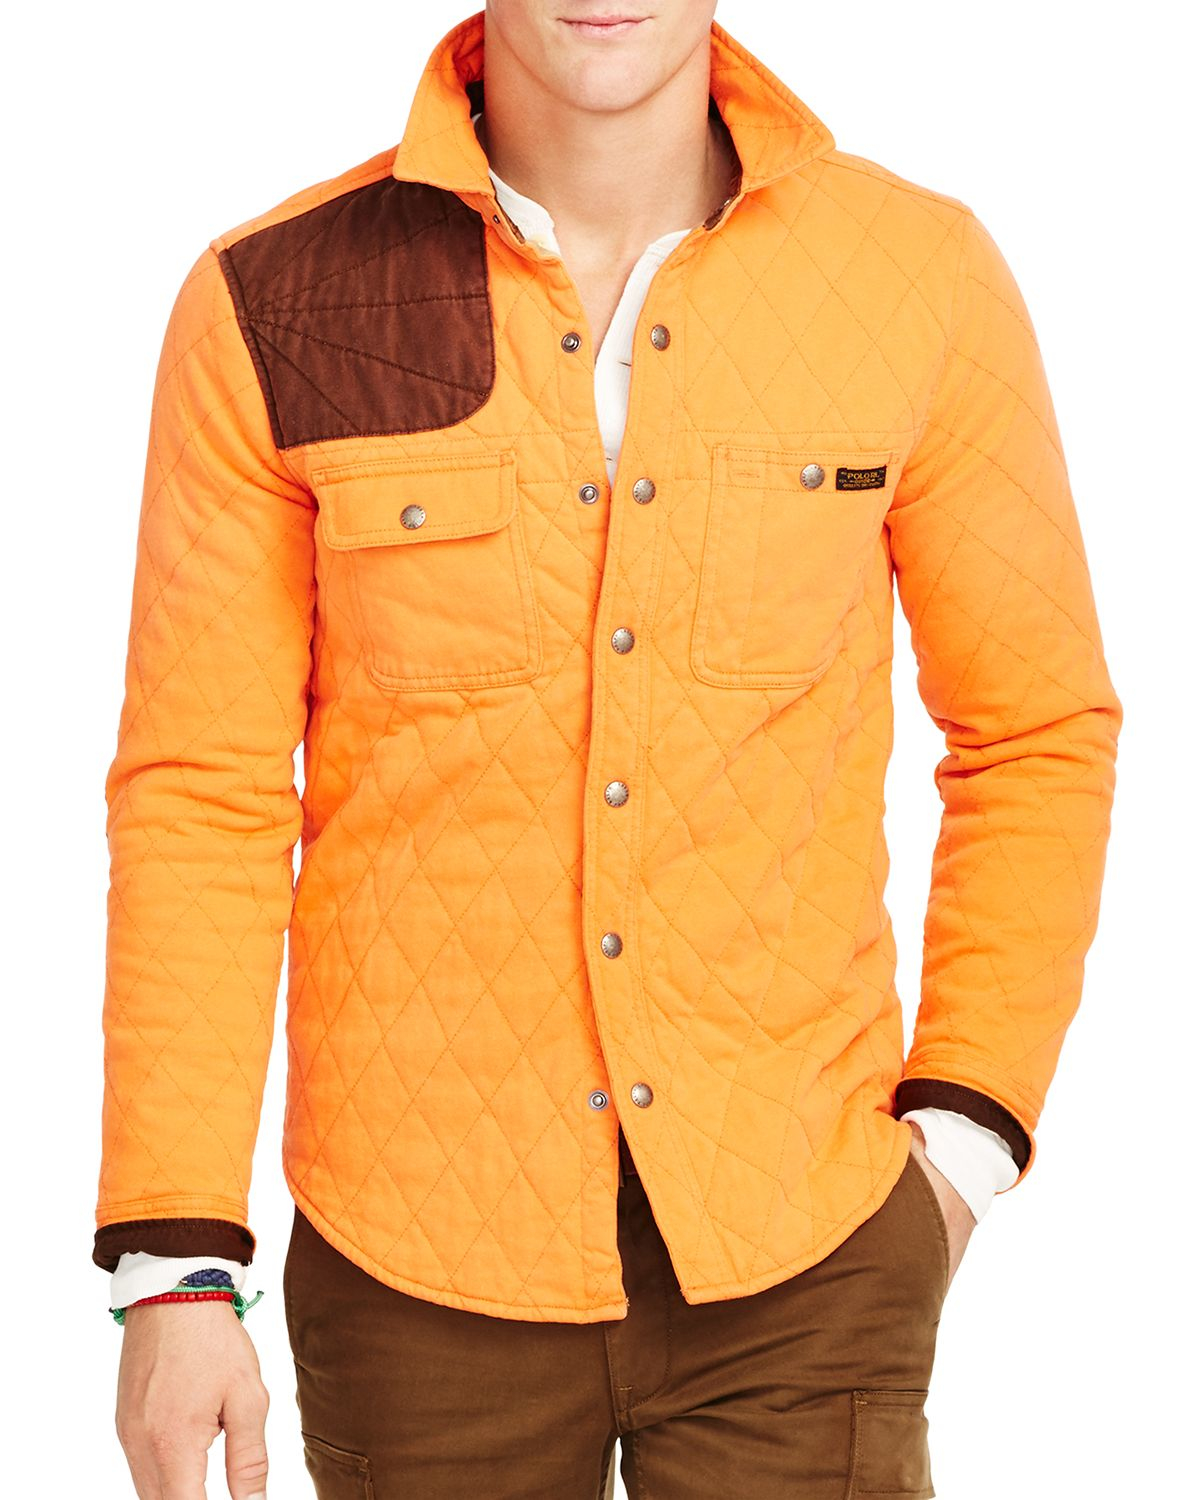 Polo ralph lauren quilted jersey shirt jacket in orange for Polo shirt with jacket